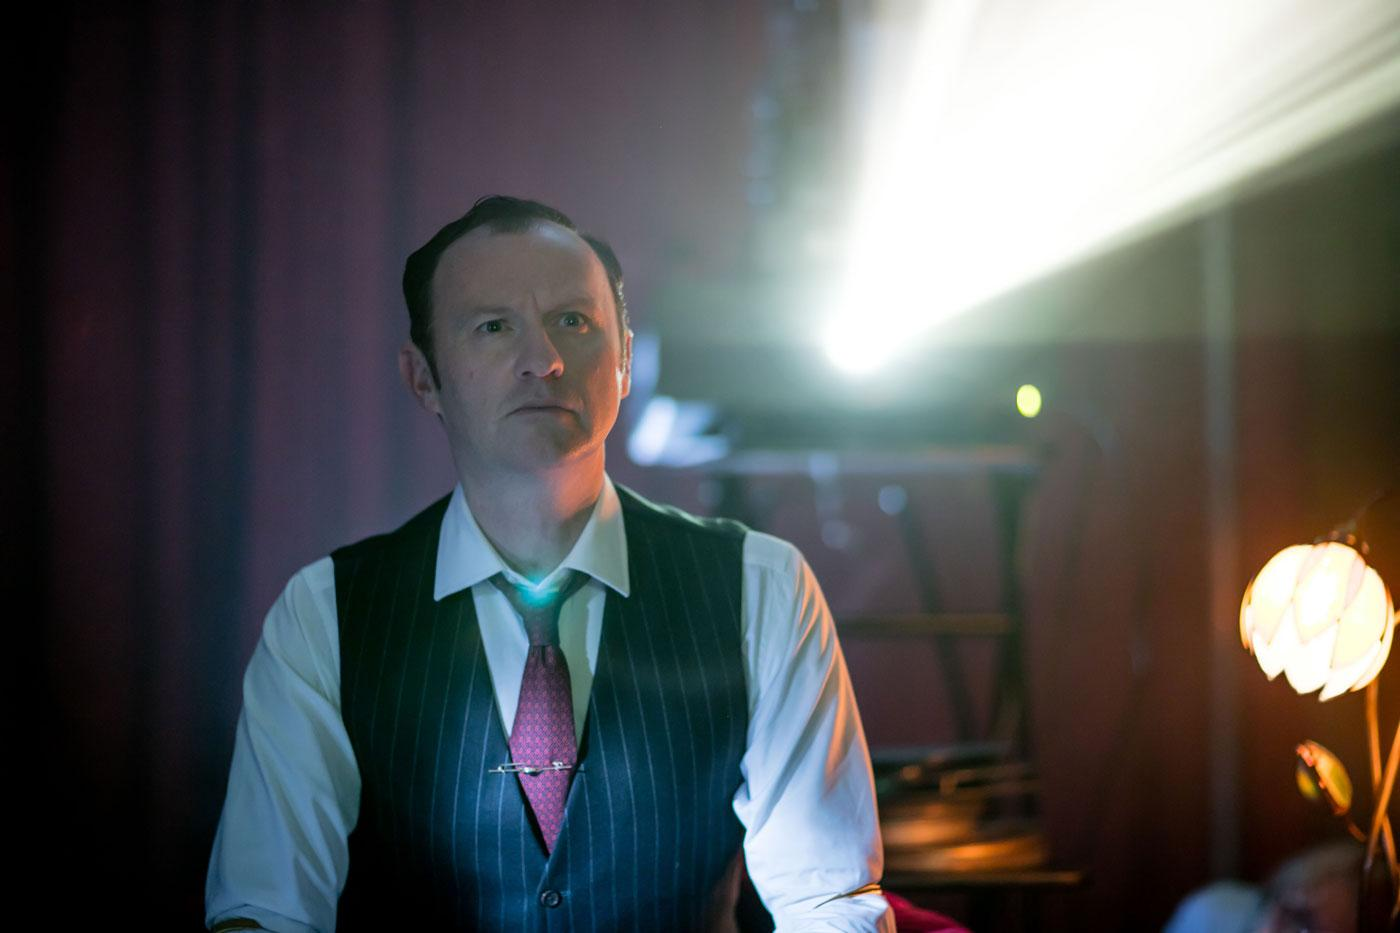 Mark Gatiss as Mycroft Holmes. (Laurence Cendrowicz/Hartswood Films & MASTERPIECE)